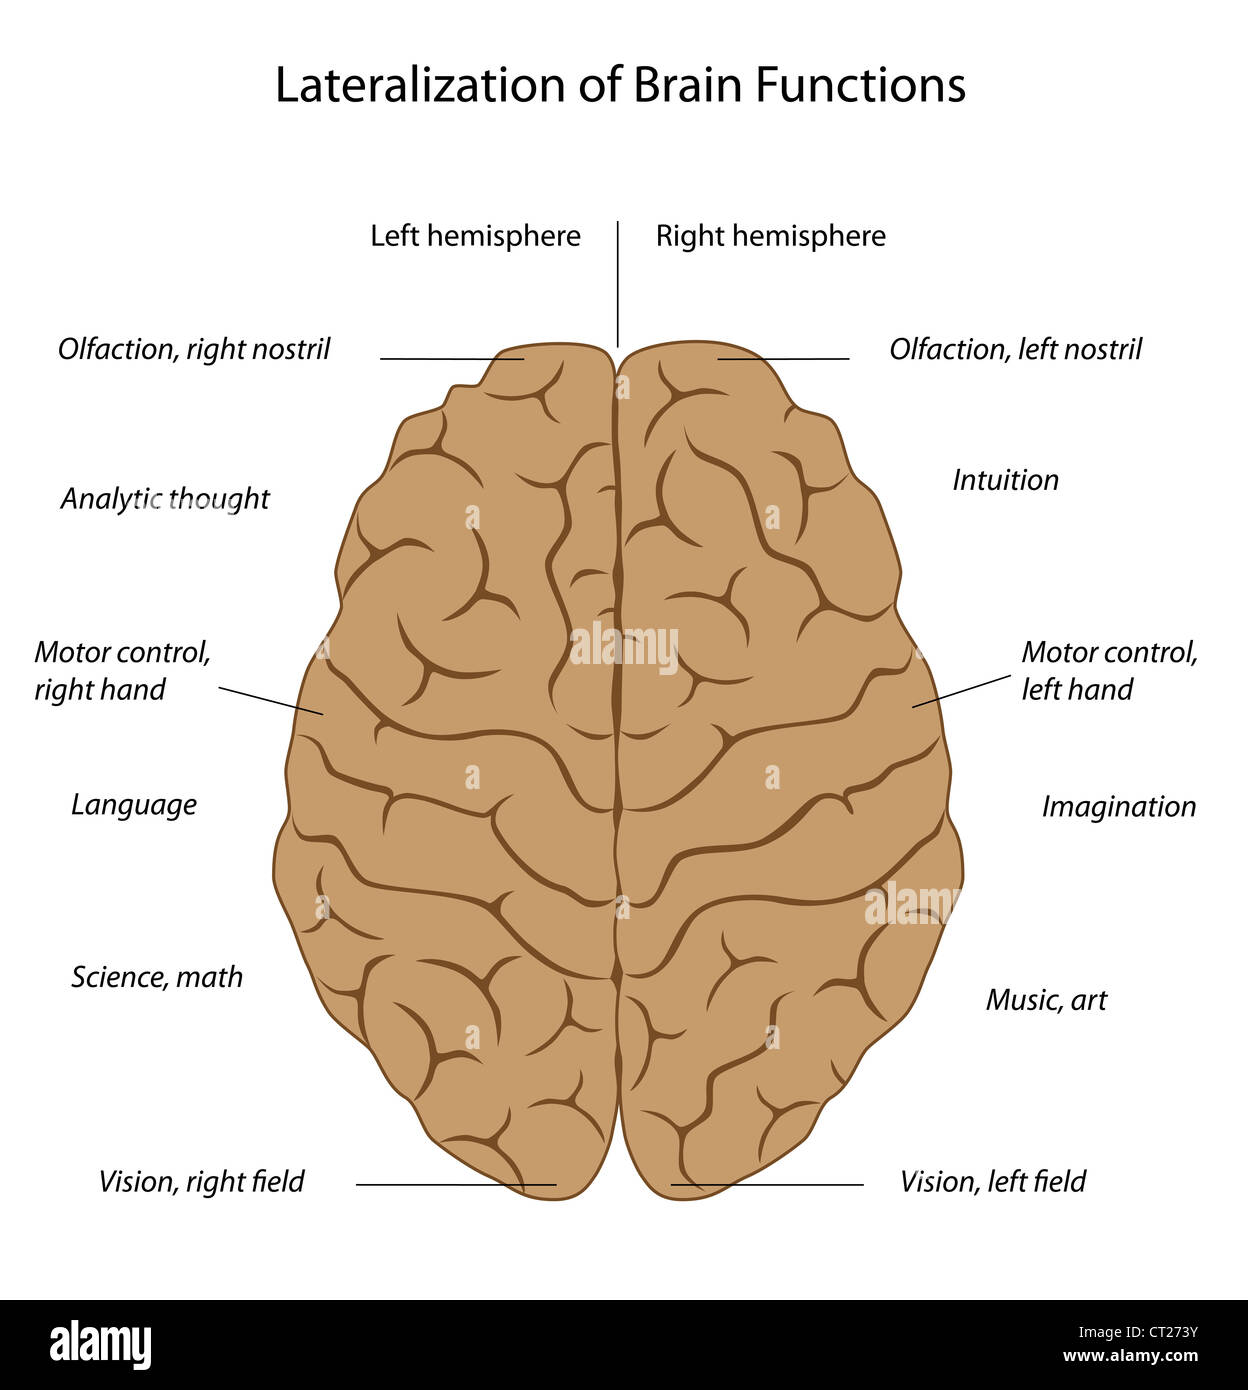 Functions of the brain - Stock Image